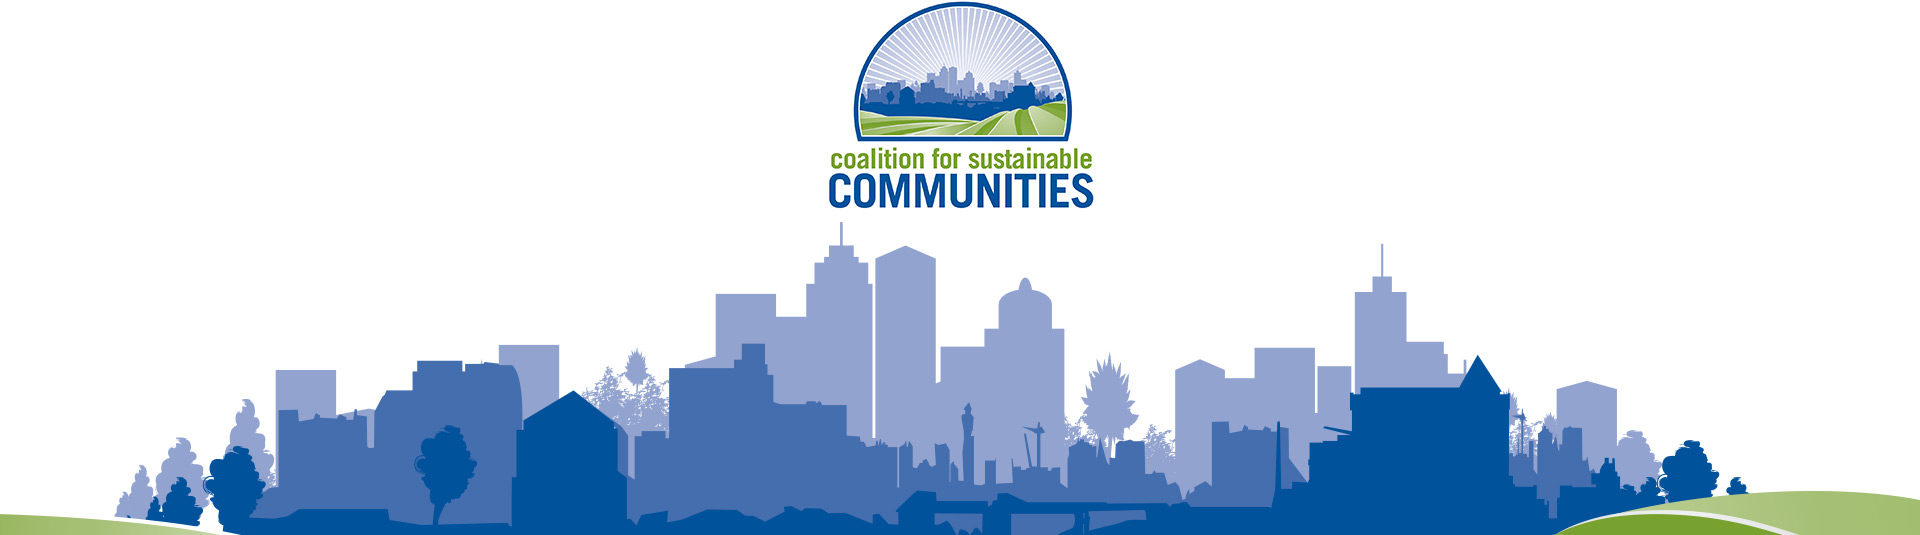 Coalition for Sustainable Communities